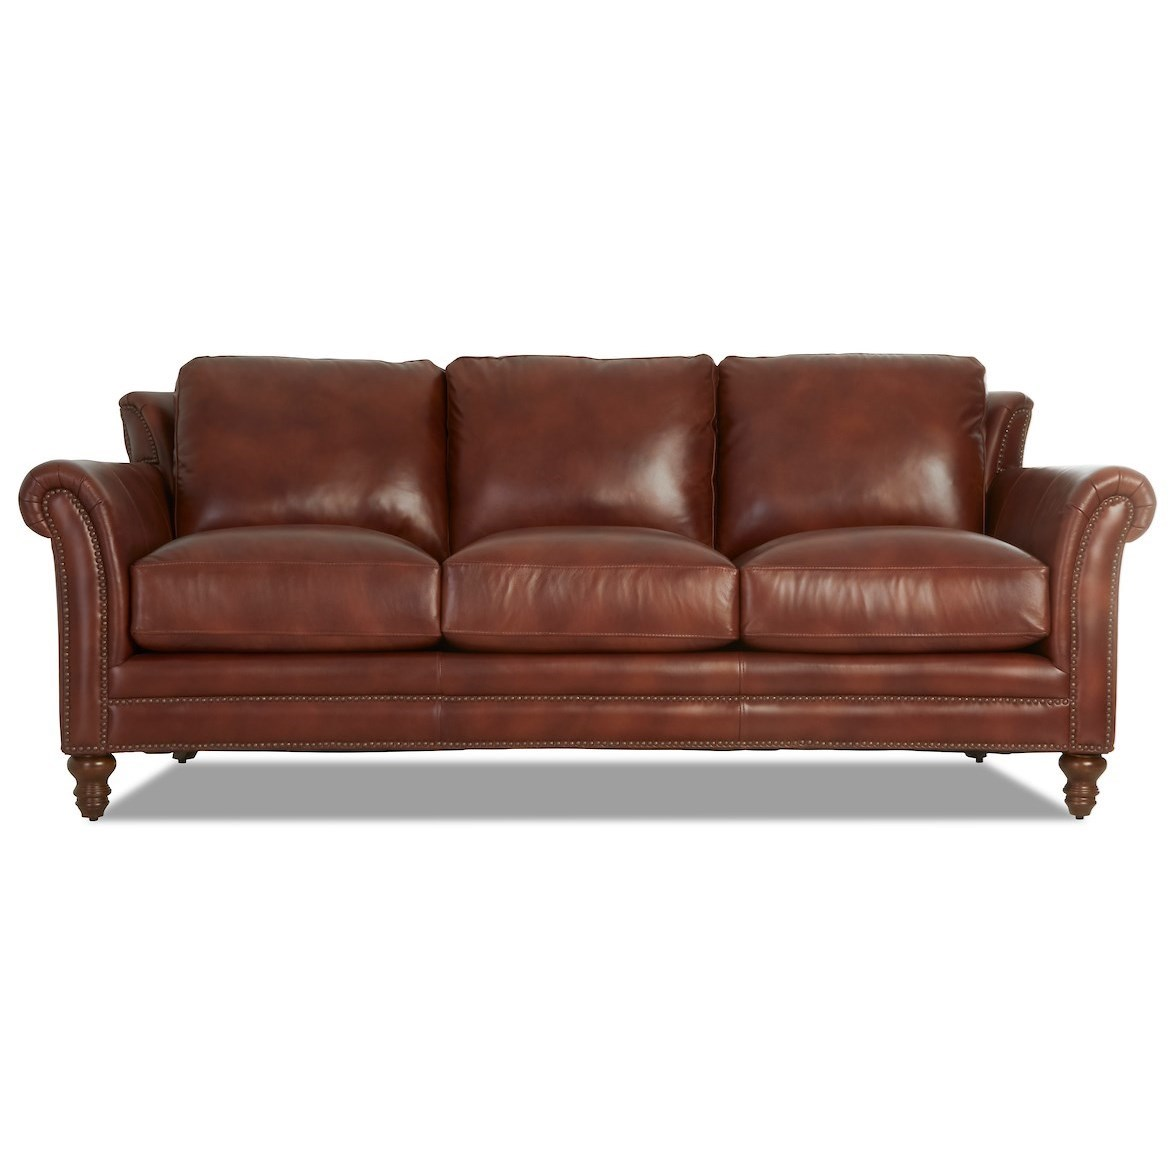 Elaine Sofa by Klaussner at Northeast Factory Direct